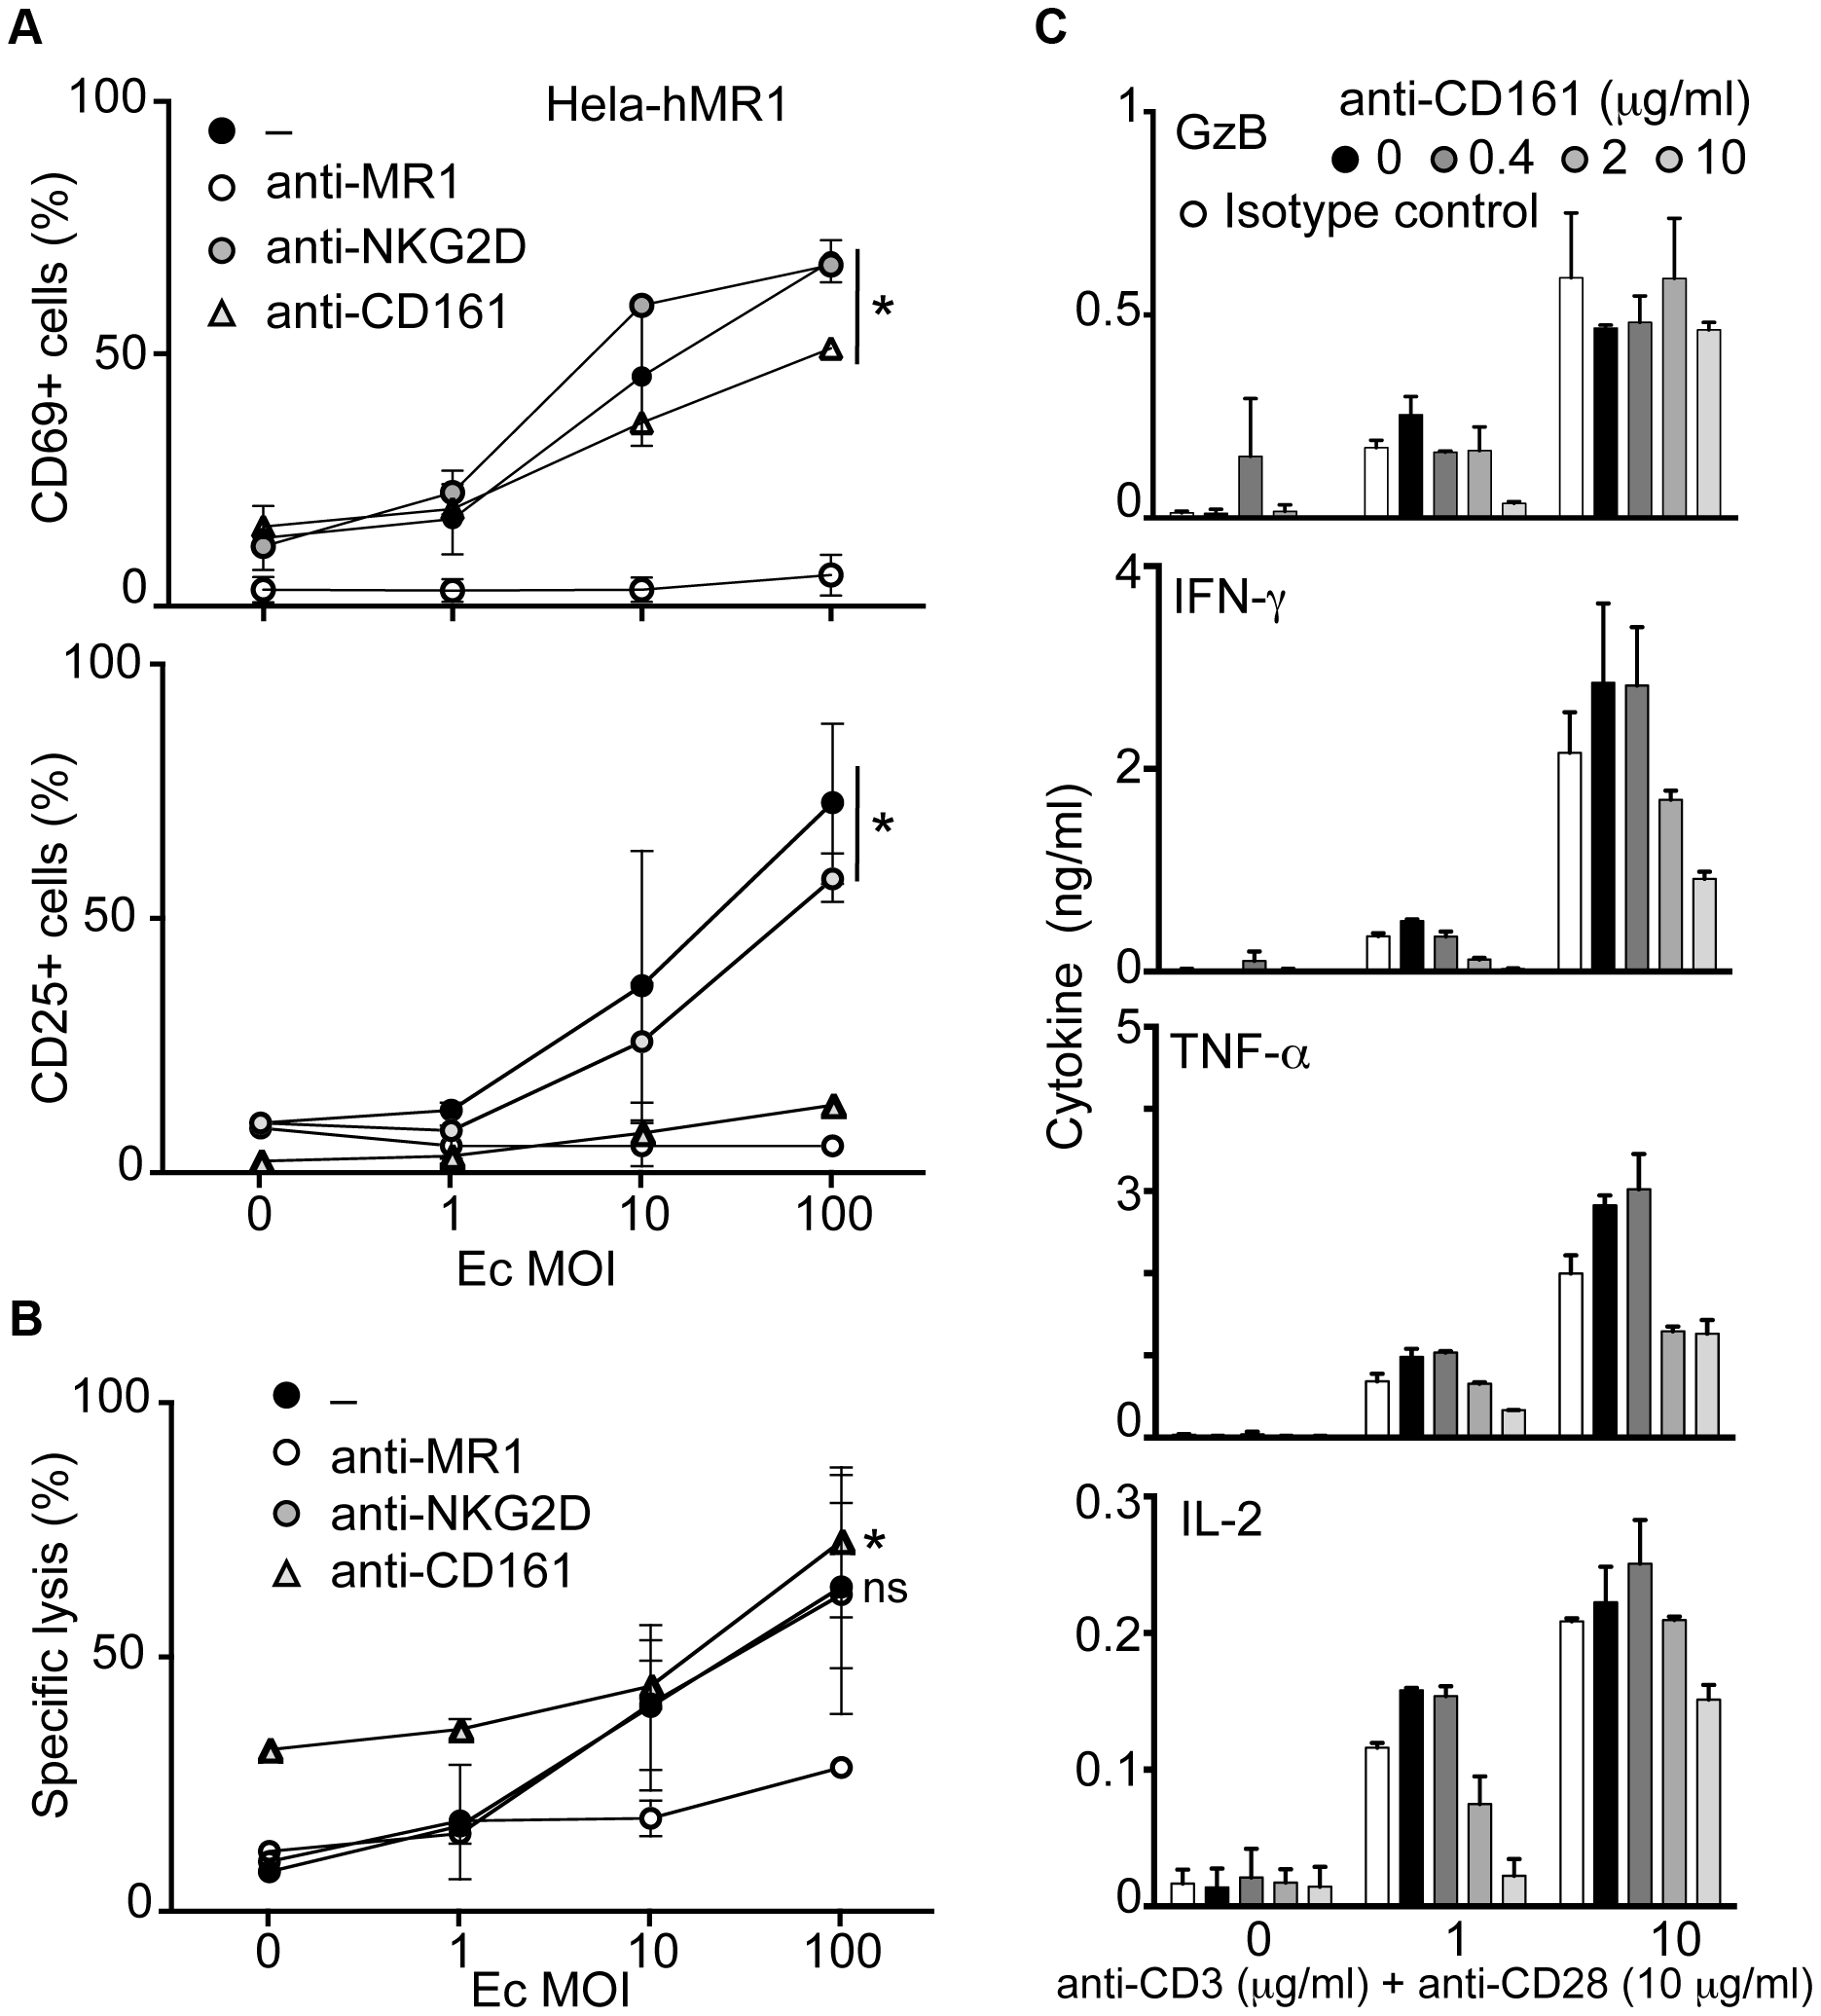 CD161 triggering inhibits the cytokine secretion but spares the cytotoxic response of MAIT cells.